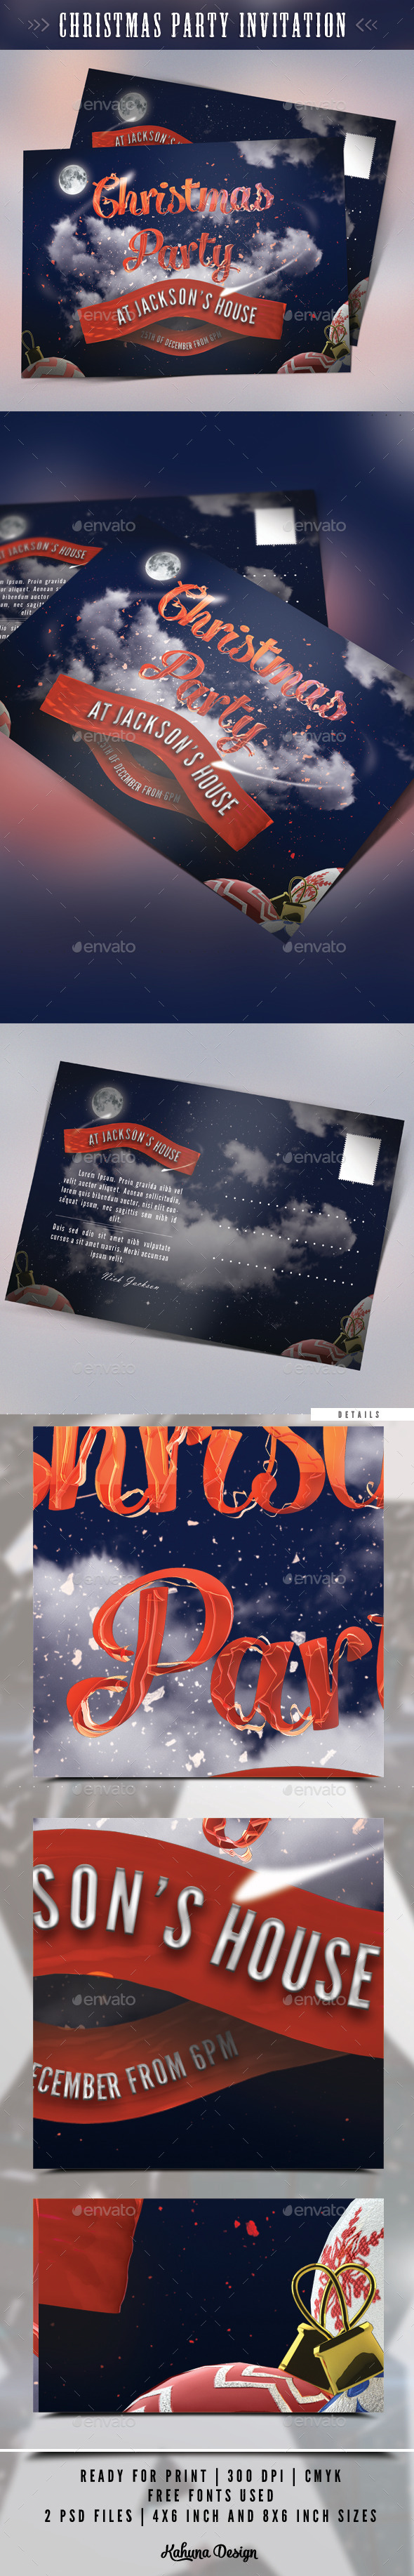 GraphicRiver Christmas Party Invitation 9329039